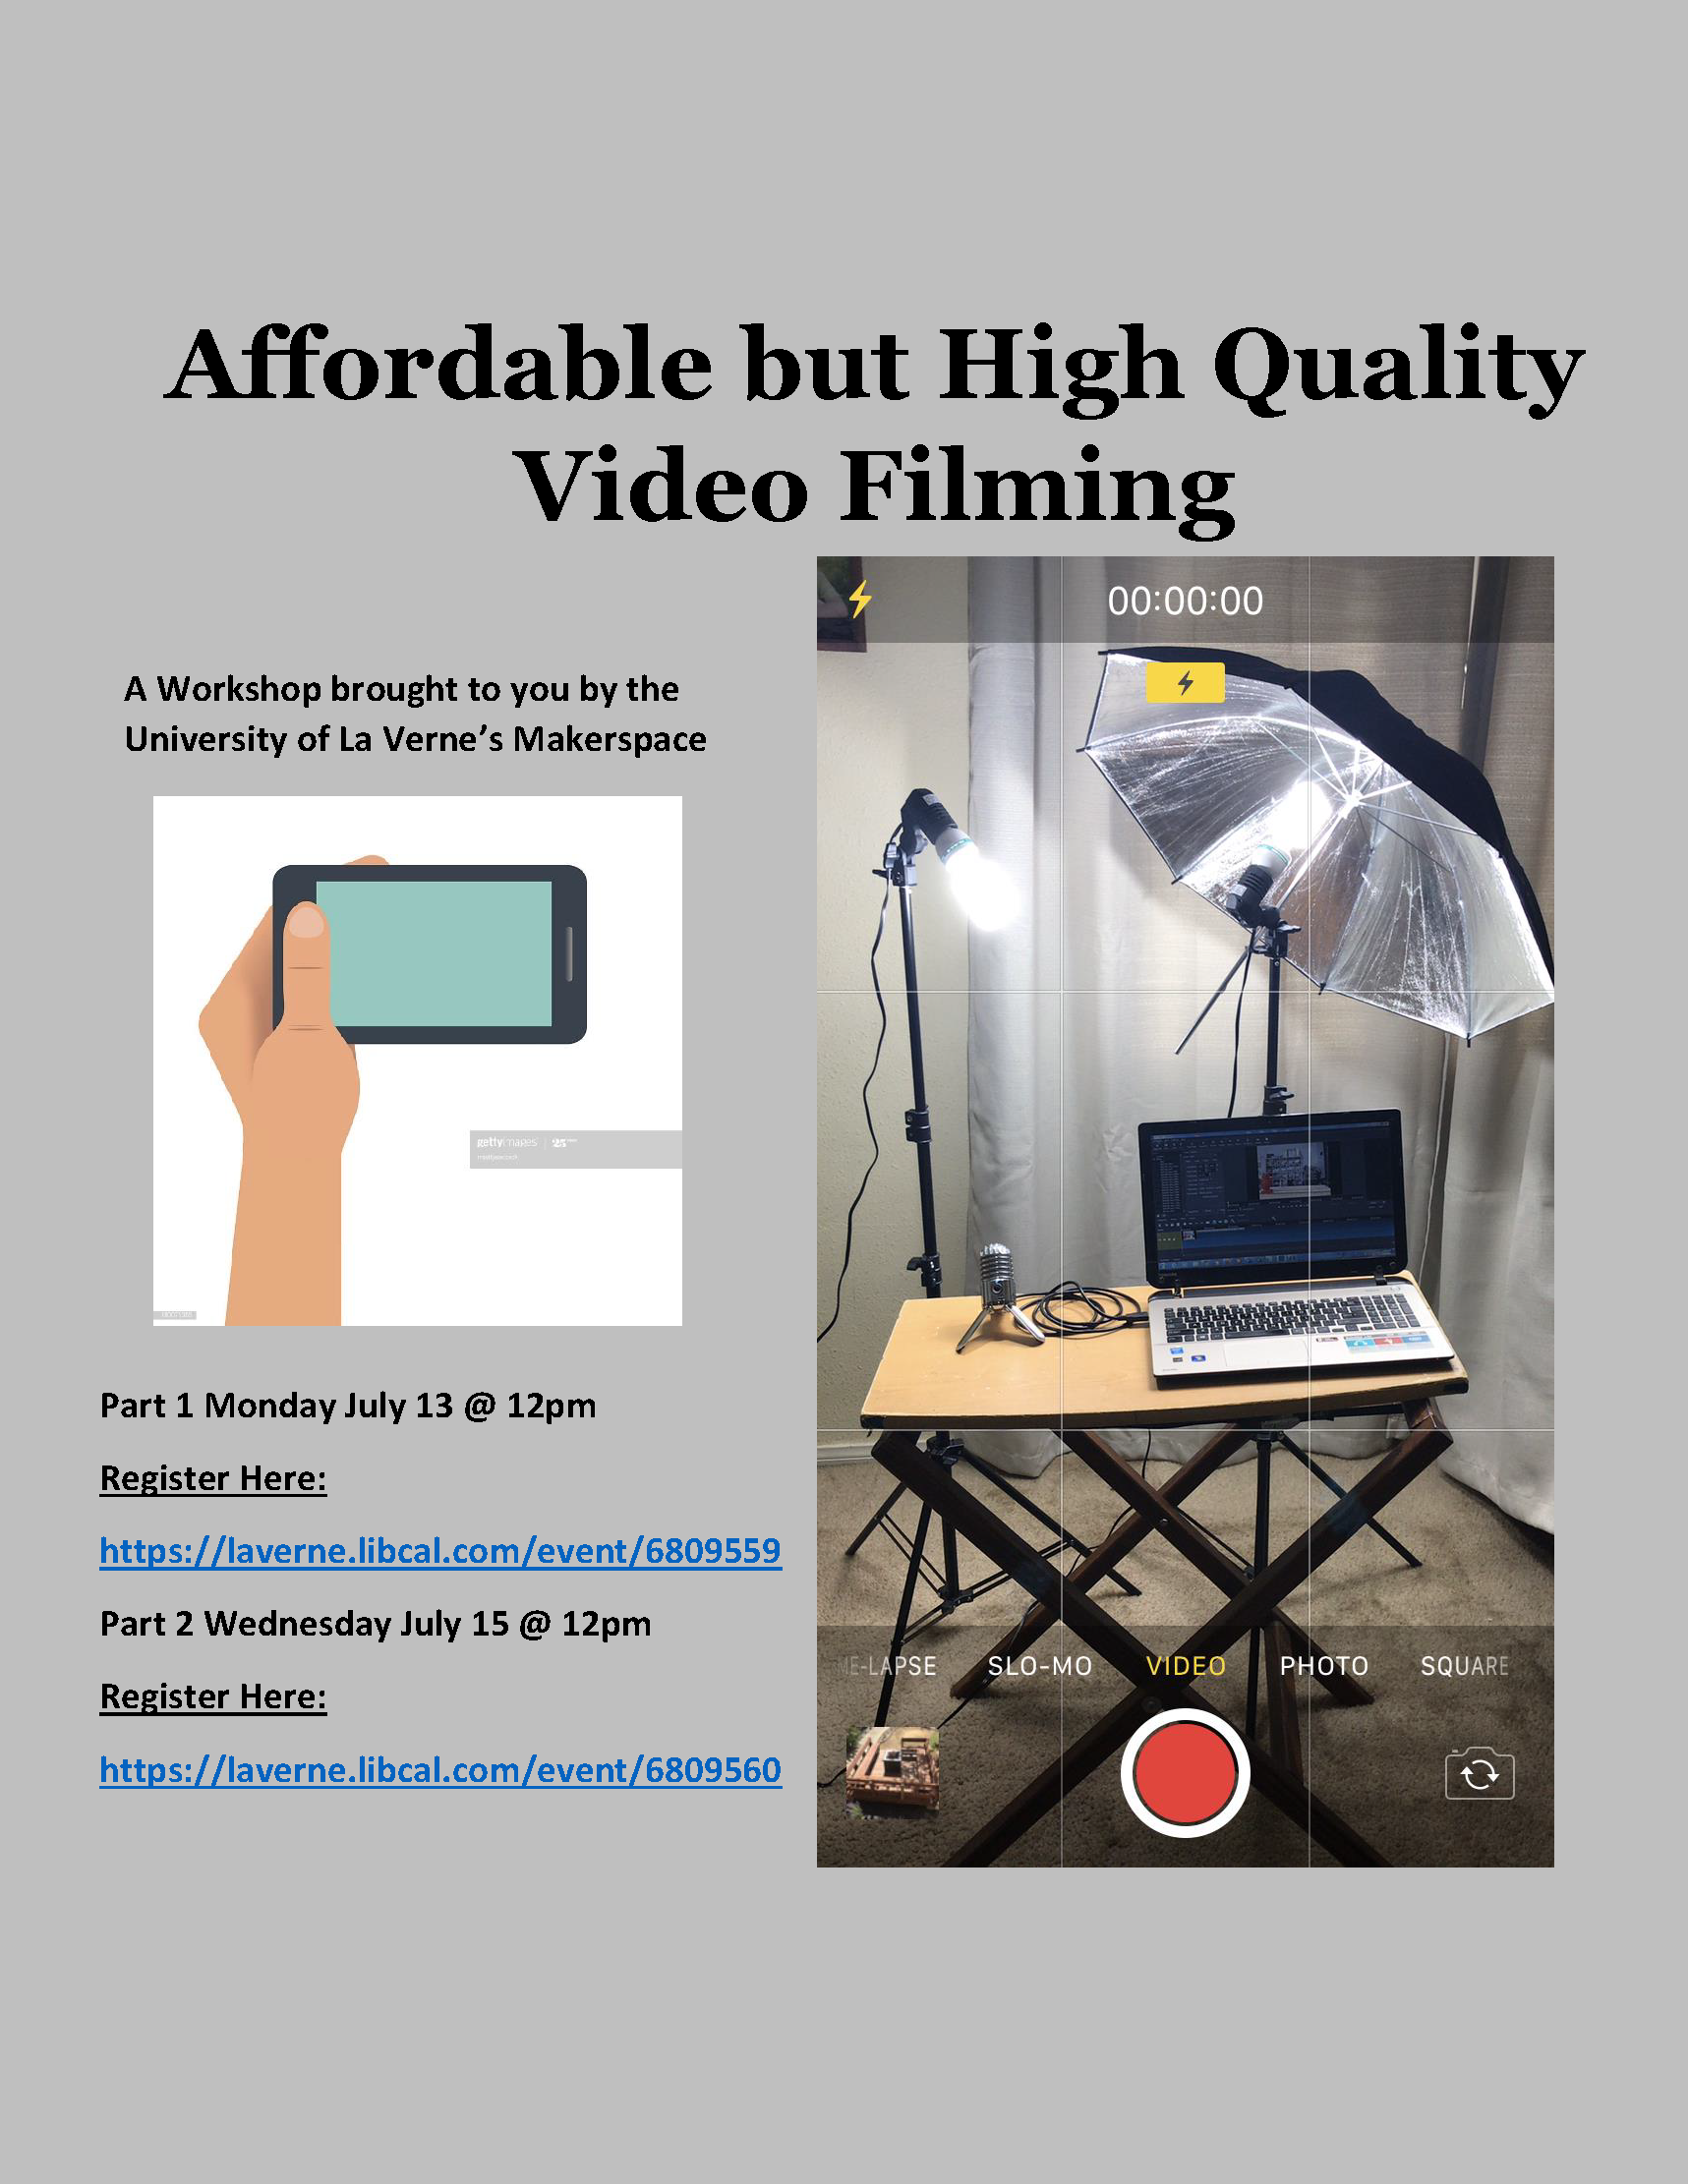 Affordable but High Quality Video Filming 1